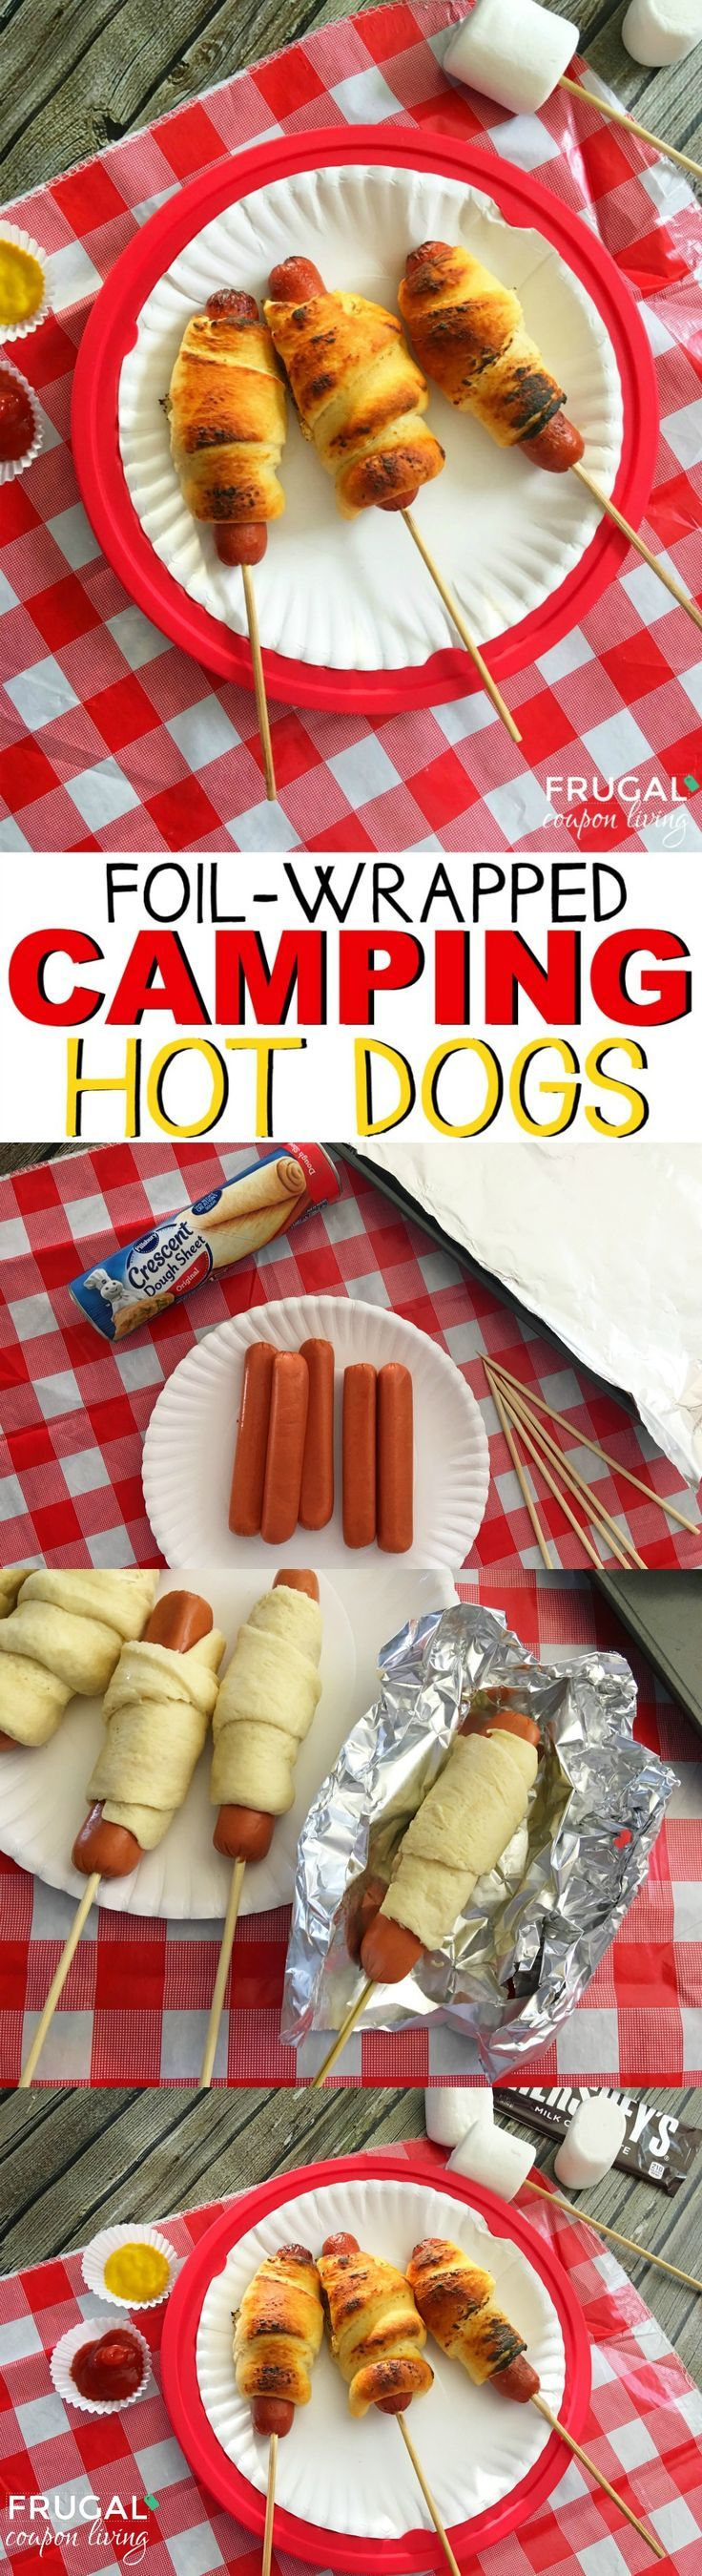 camping dogs recipe for the campfire on frugal coupon living